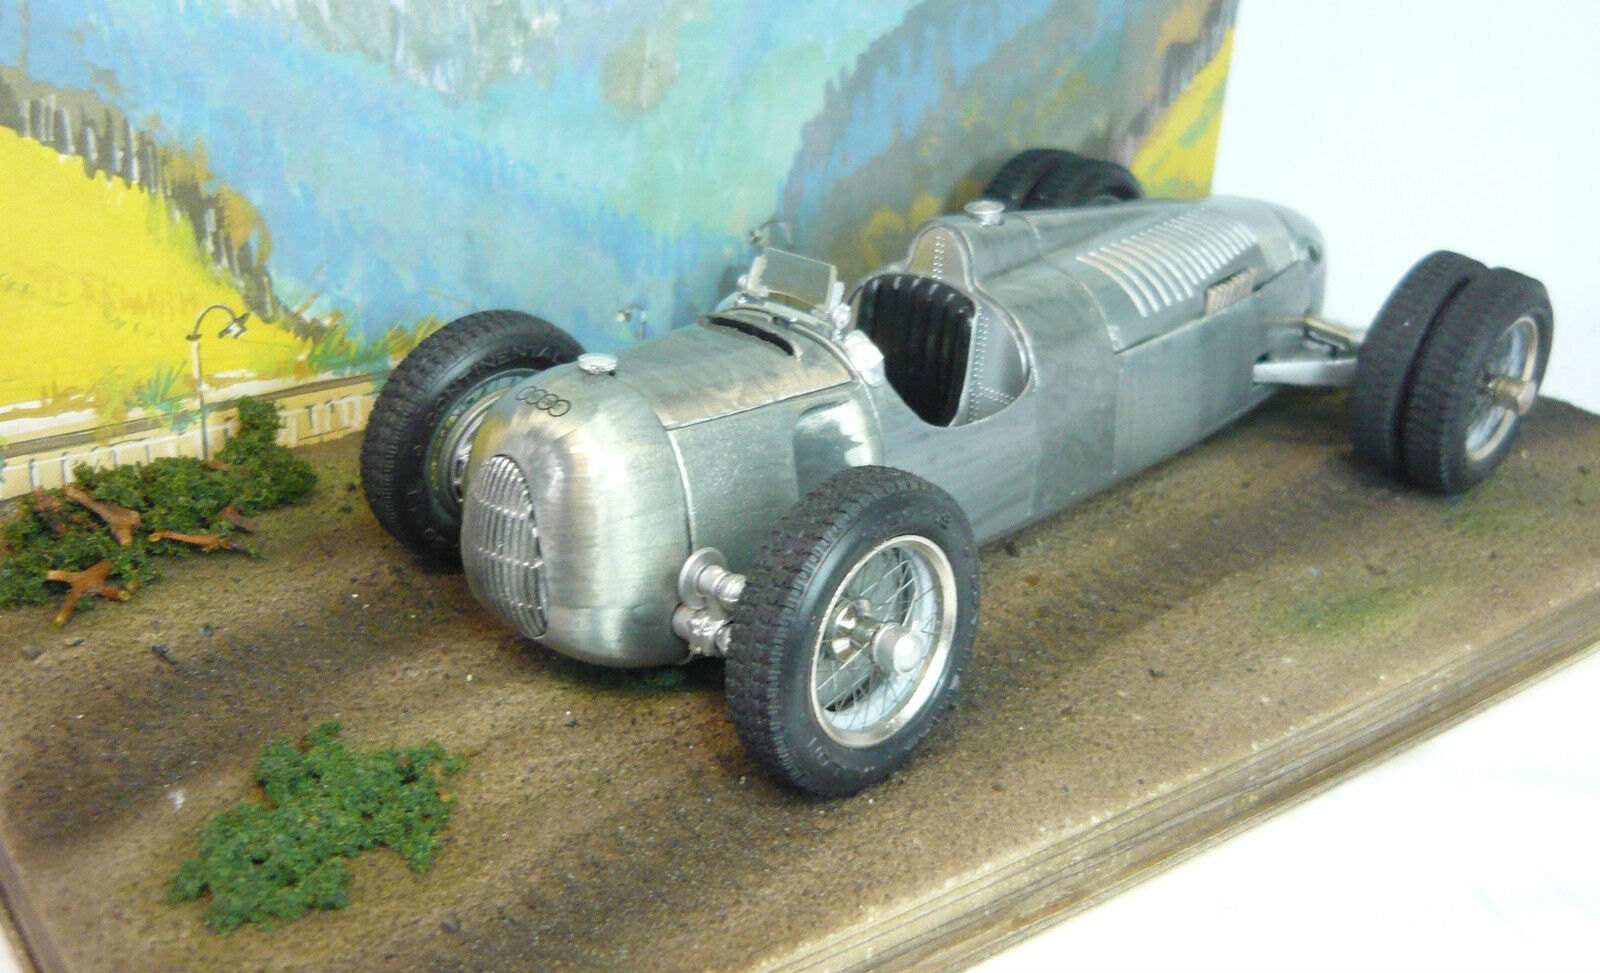 Revival Auto Union Racing Car gedengelte Version 1 20 Finished Model New & in Original Box